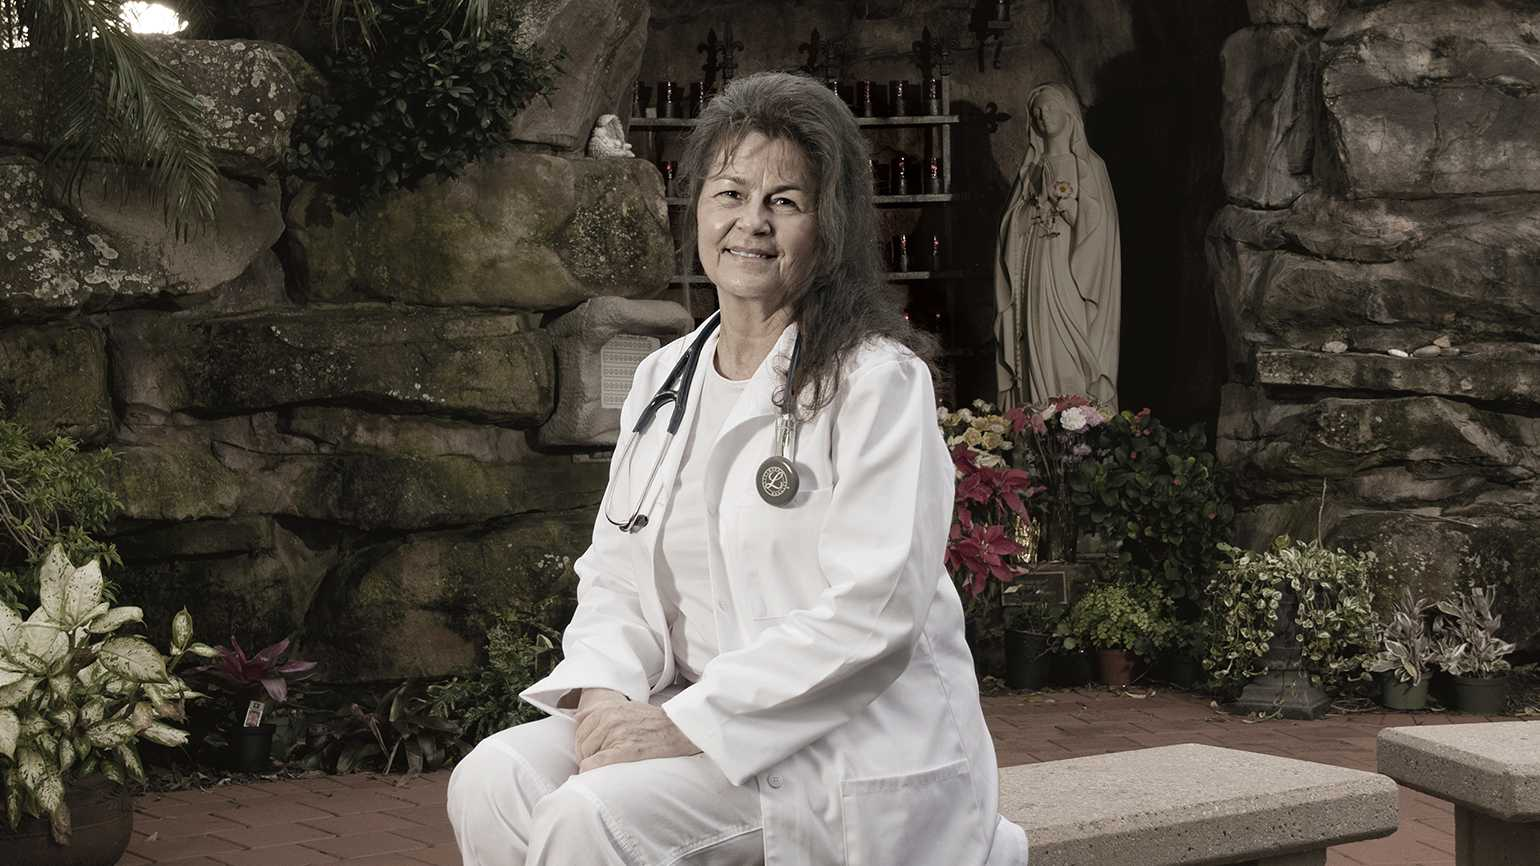 Janice visits this meditation garden before or after her shifts.